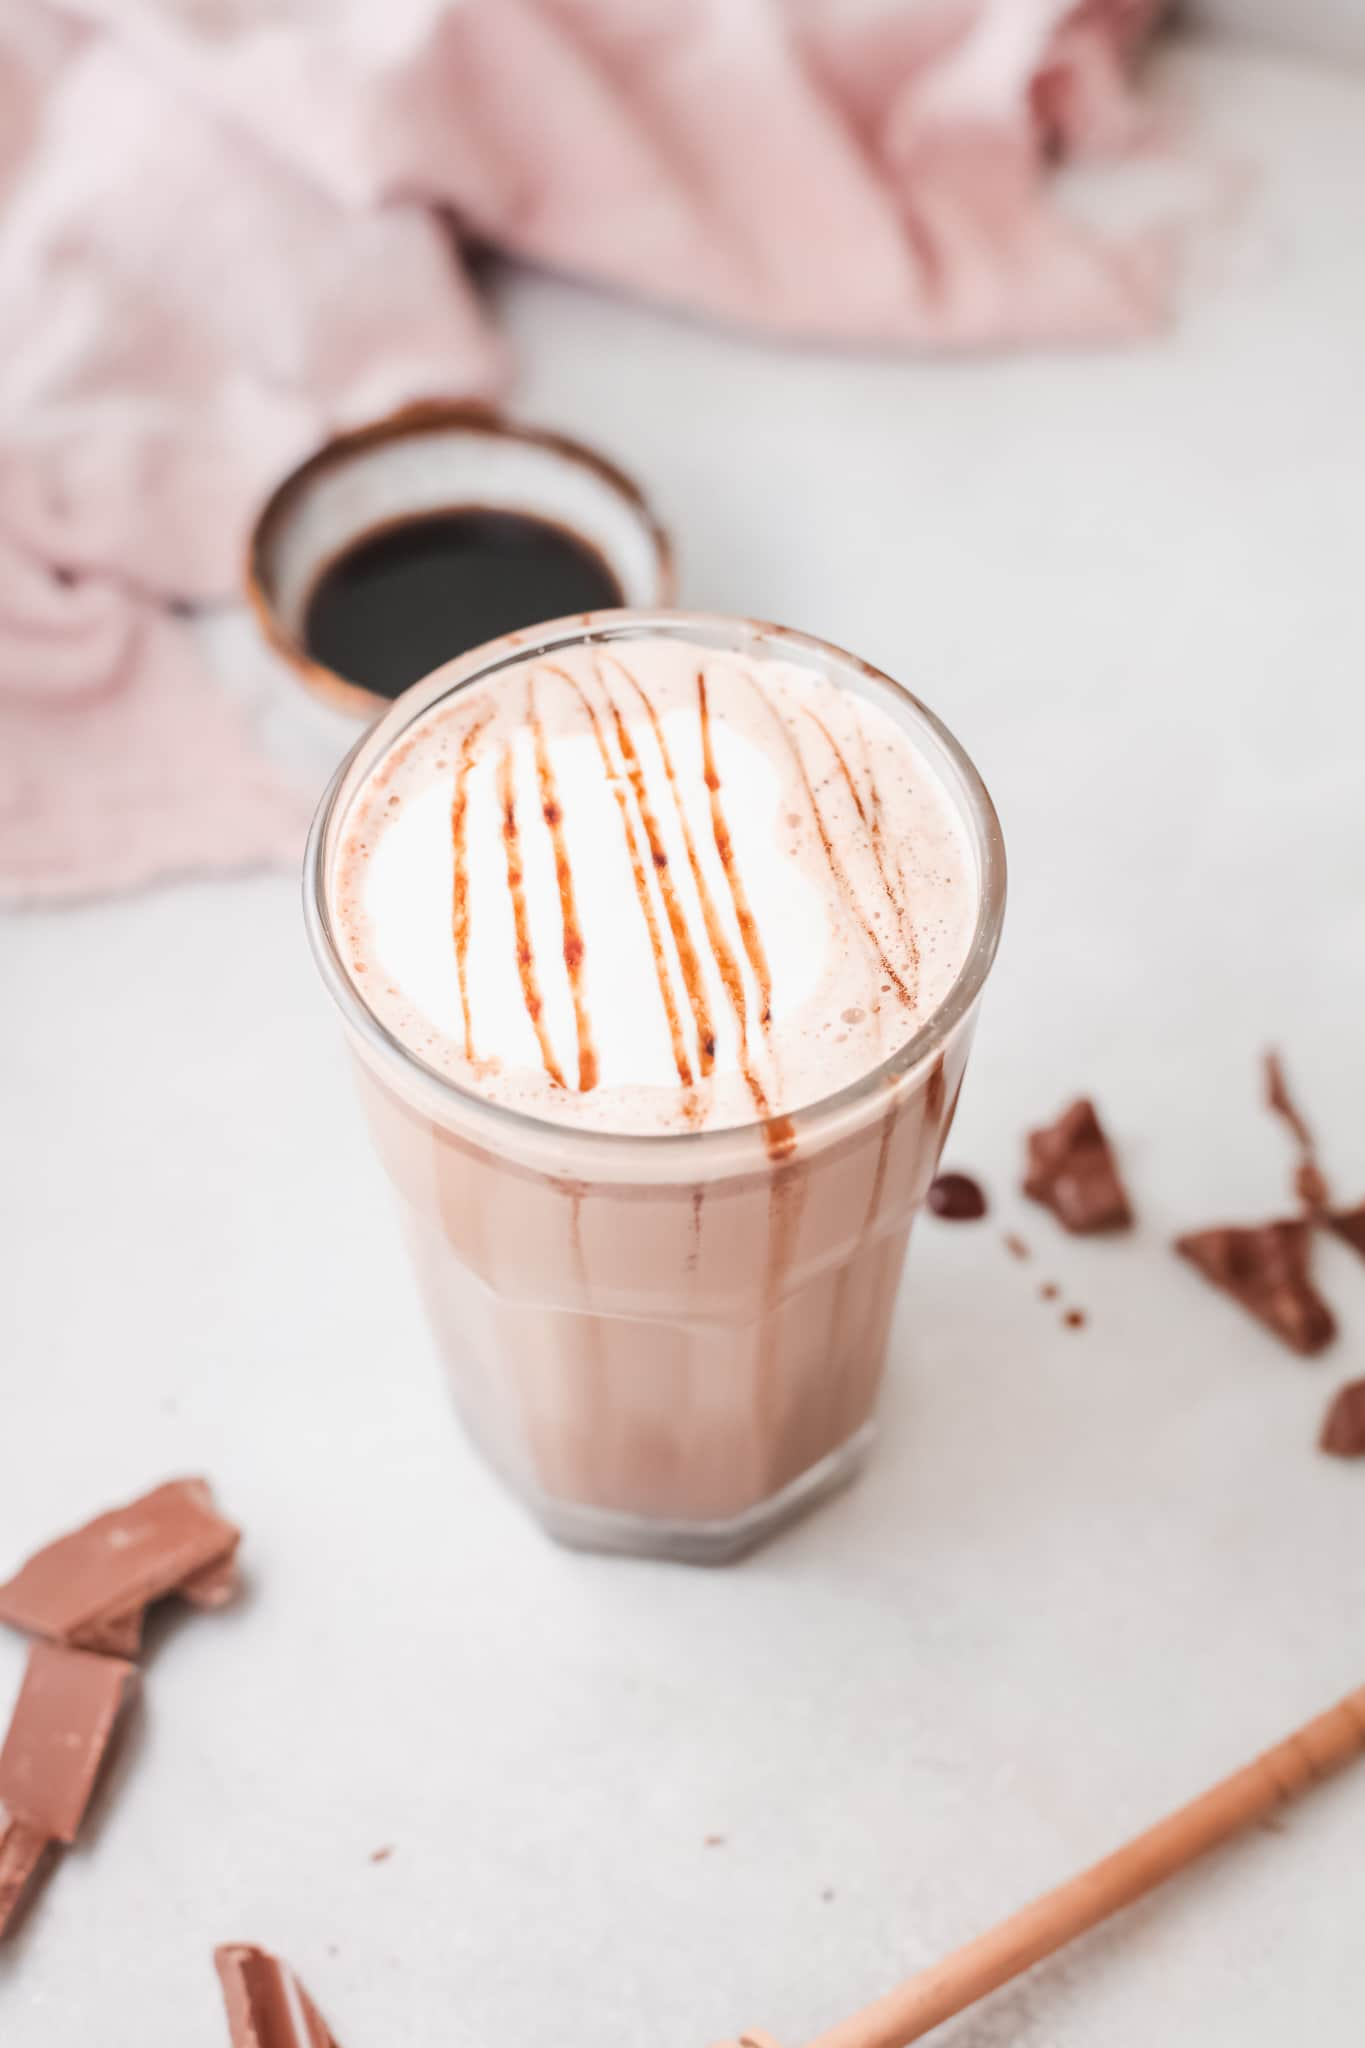 Instant Pot Salted Caramel Hot Chocolate Topping. Silky smooth, creamy and decadent, this Instant Pot Salted Caramel Hot Chocolate is an instant family favorite. Made in either the Instant Pot or Slow Cooker this festive holiday drink is perfect for any occasion.